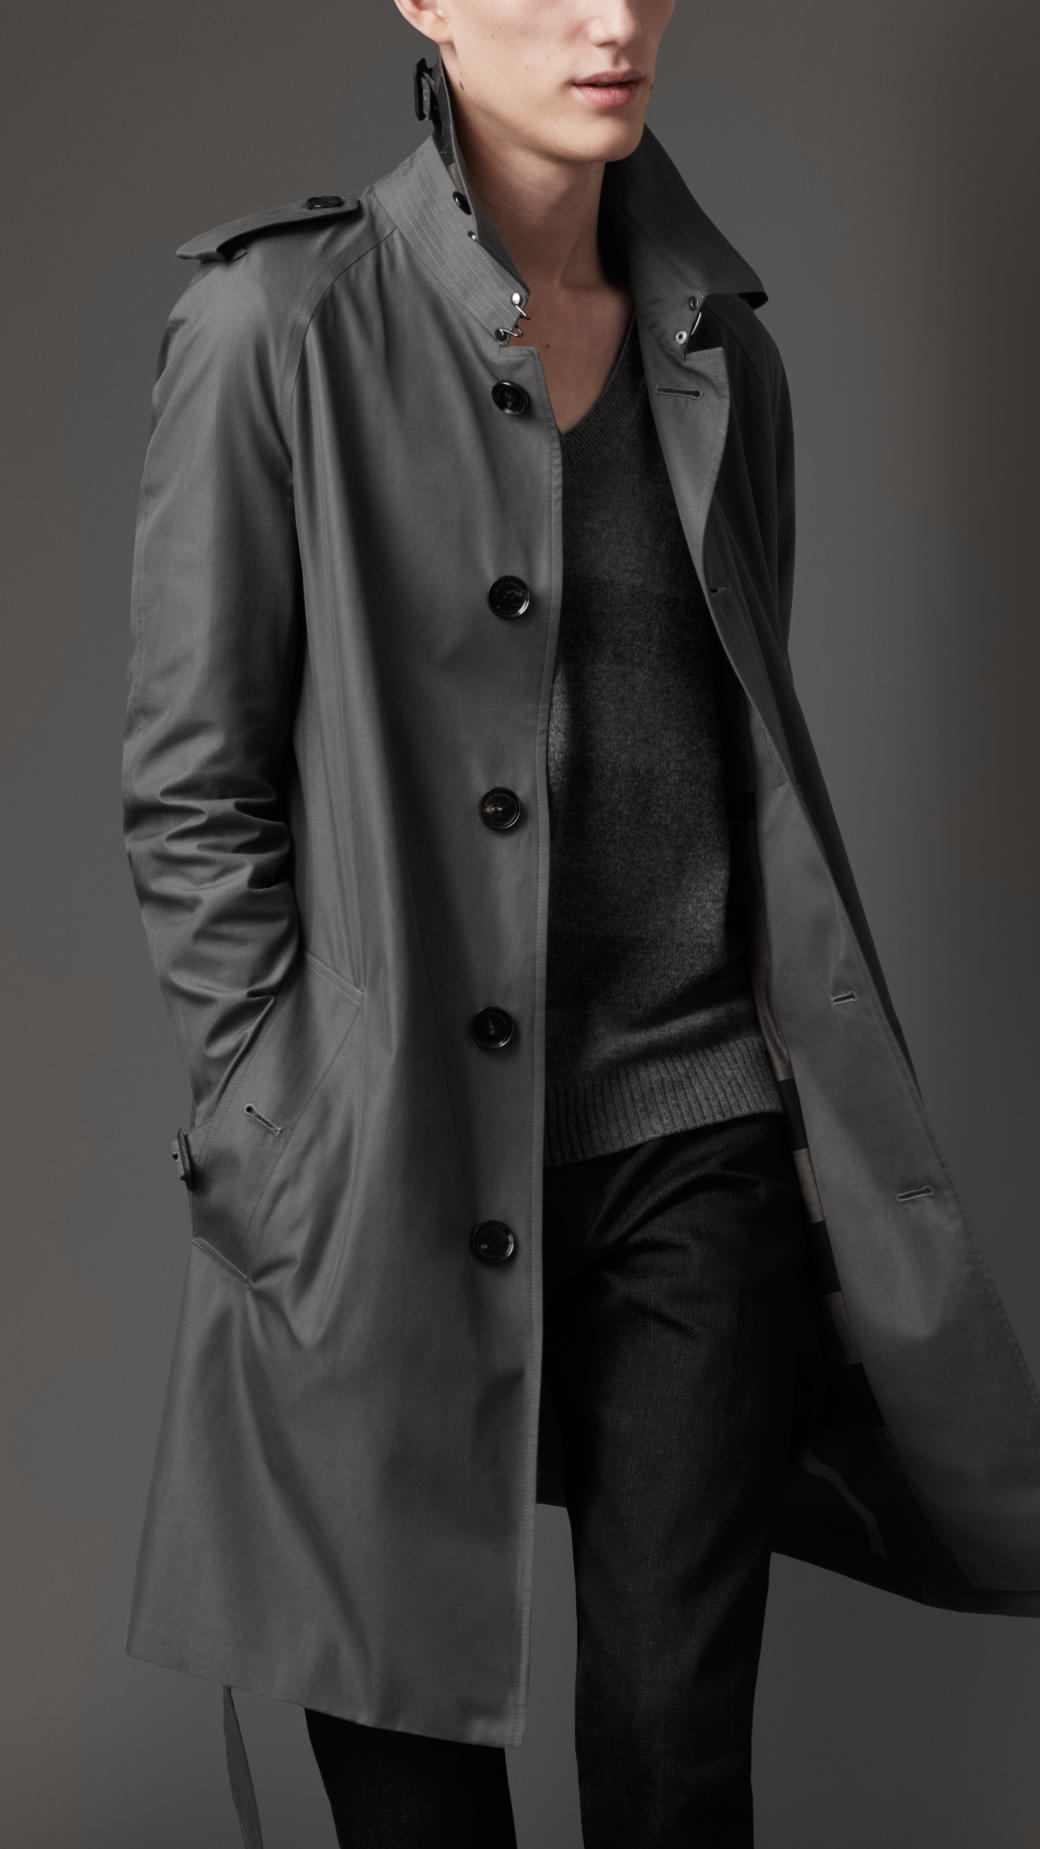 The range includes both single-breasted and double-breasted designs alongside trench coats, parkas, and more. Shop men's coats from Burberry. The range includes both single-breasted and double-breasted designs alongside trench coats, parkas, and more. Grey Brown Beige Blue Green Red Yellow White. Show Results Clear. Size ALL XXS XS S M L.